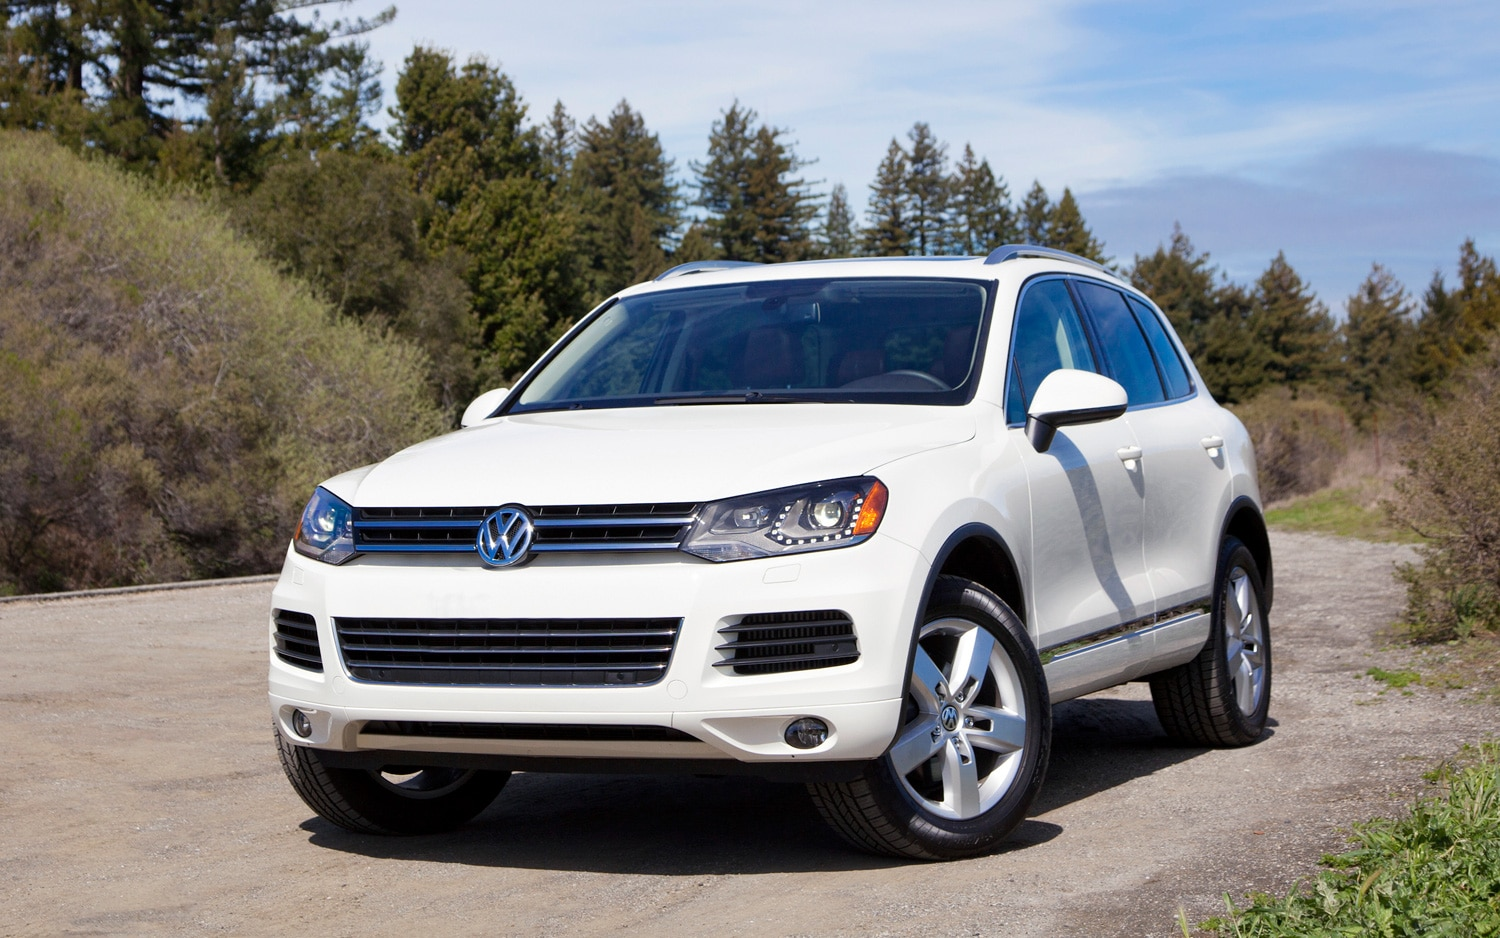 2012 Volkswagen Touareg Front Three Quarter 11